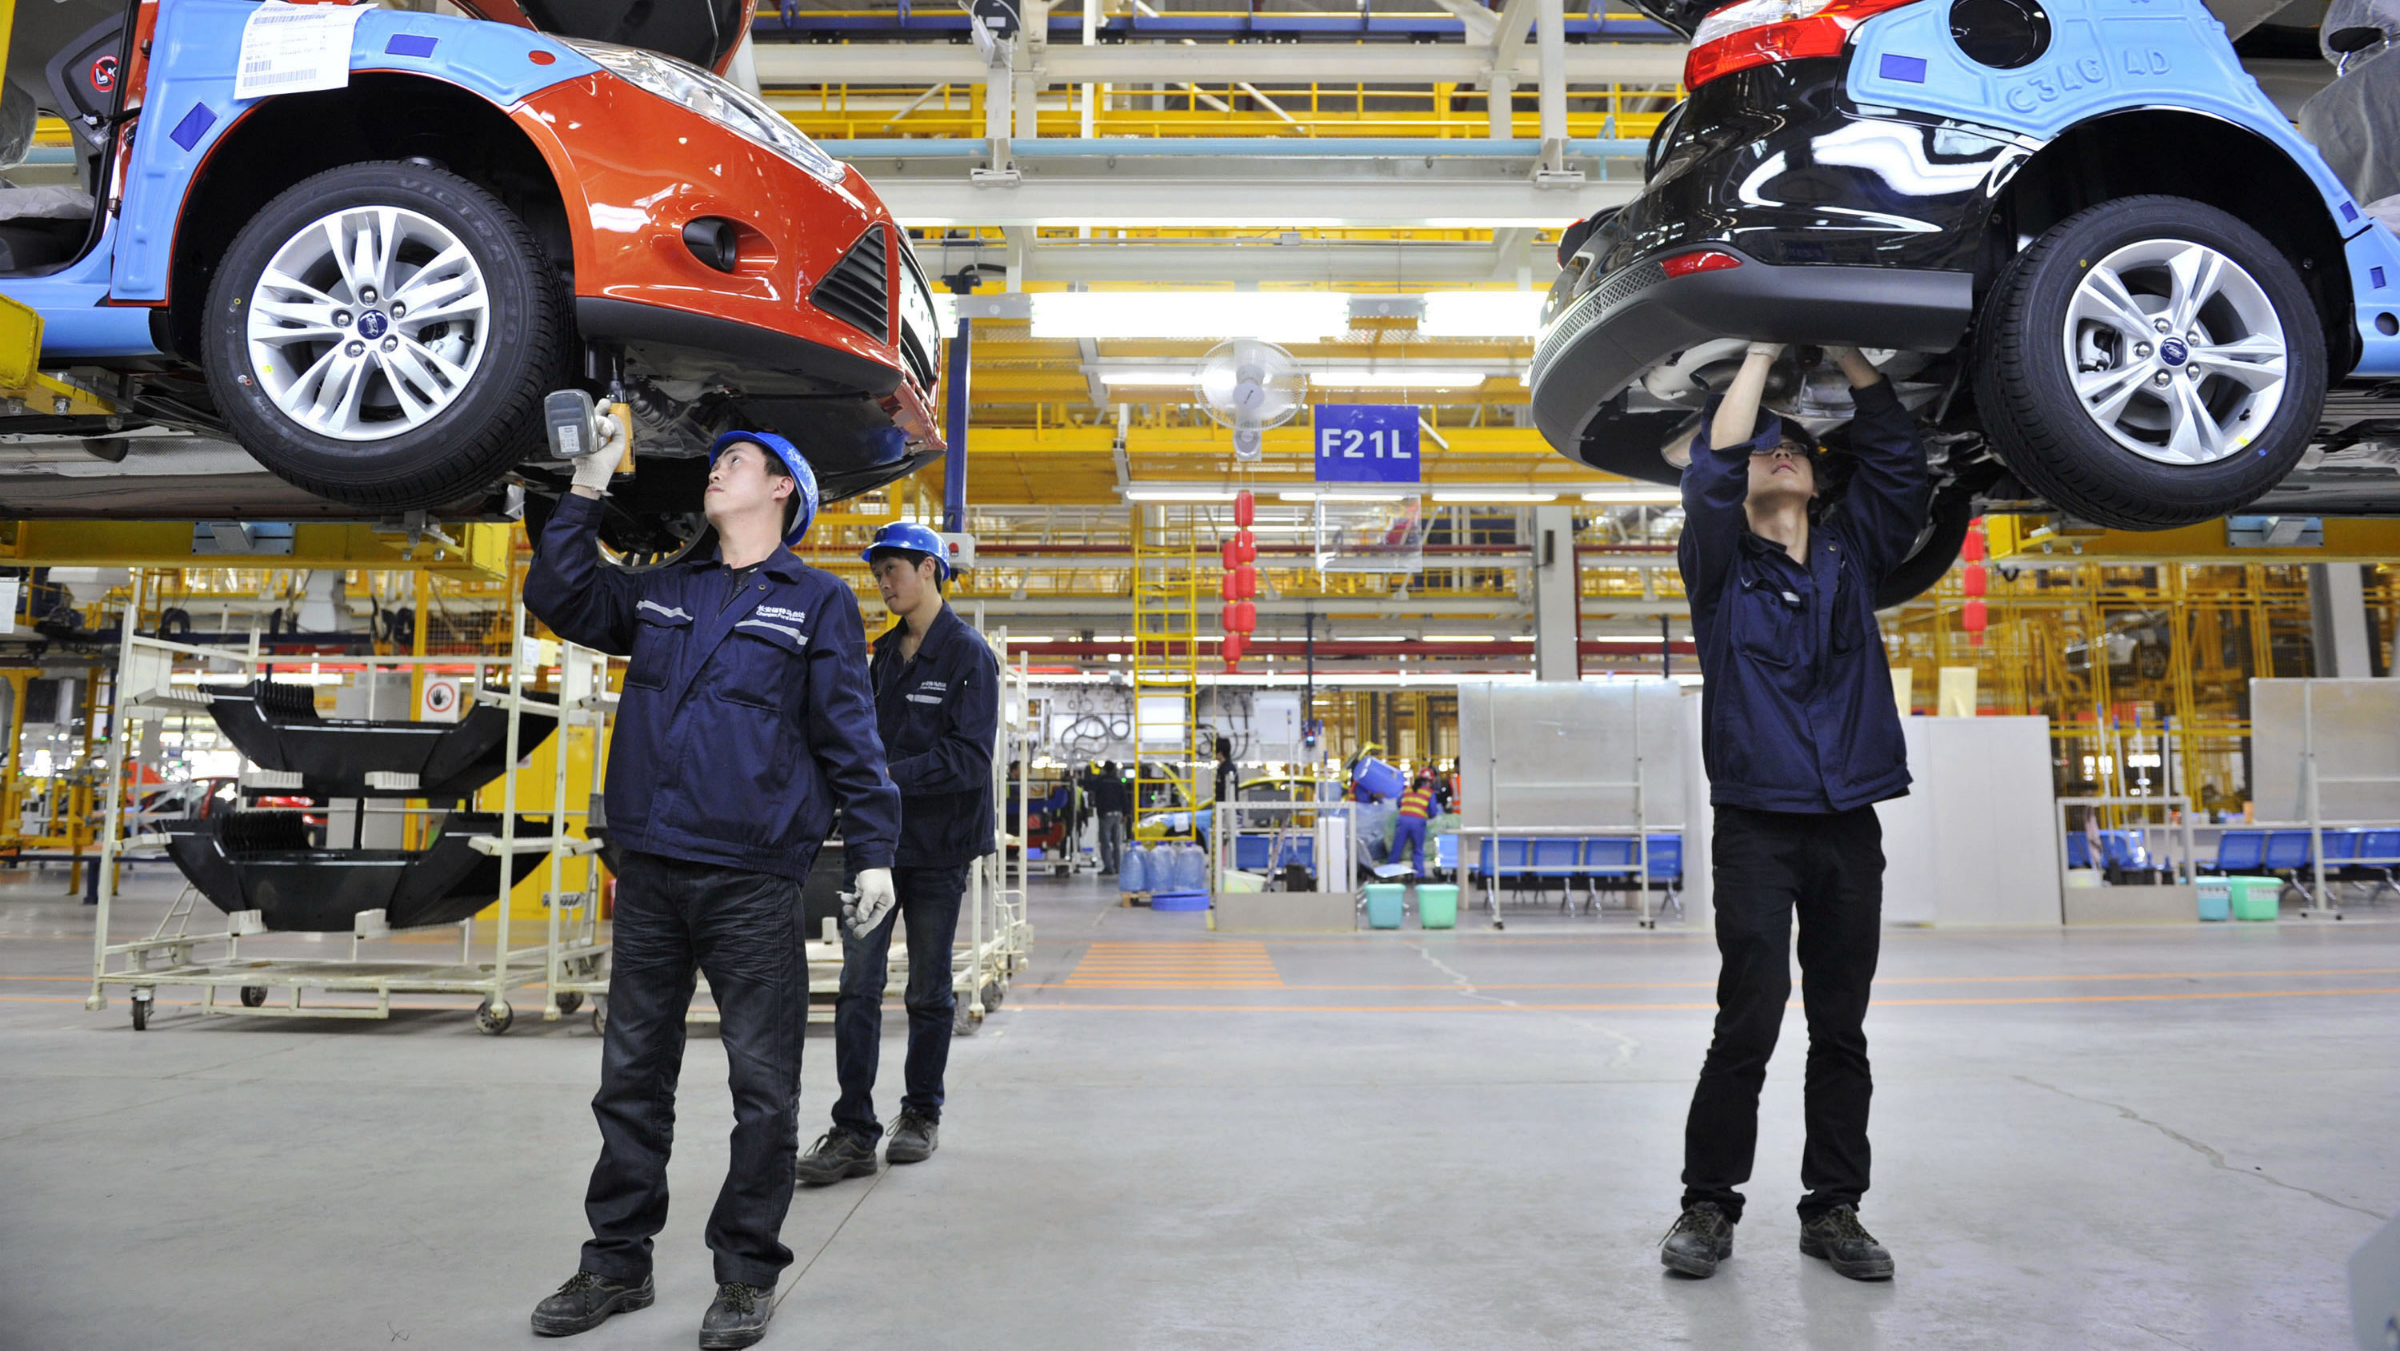 Employees install car components at an assembly line at a Ford manufacturing plant in Chongqing municipality, April 20, 2012. The new Ford car massive manufacturing plant, which opened in February, will need to be a success if Ford is to get a better foothold in the world's biggest car market, where it badly lags rivals such as General Motors Co and Volkswagen AG, which together produced the six top-selling cars in the country in 2011. Ford -- which was late getting into China -- had just 2.8 percent of the 18.5 million vehicle market last year, against GM's 14 percent and VW's 12 percent. Picture taken April 20, 2012. To match FEATURE FORD-CHINA/ REUTERS/Stringer